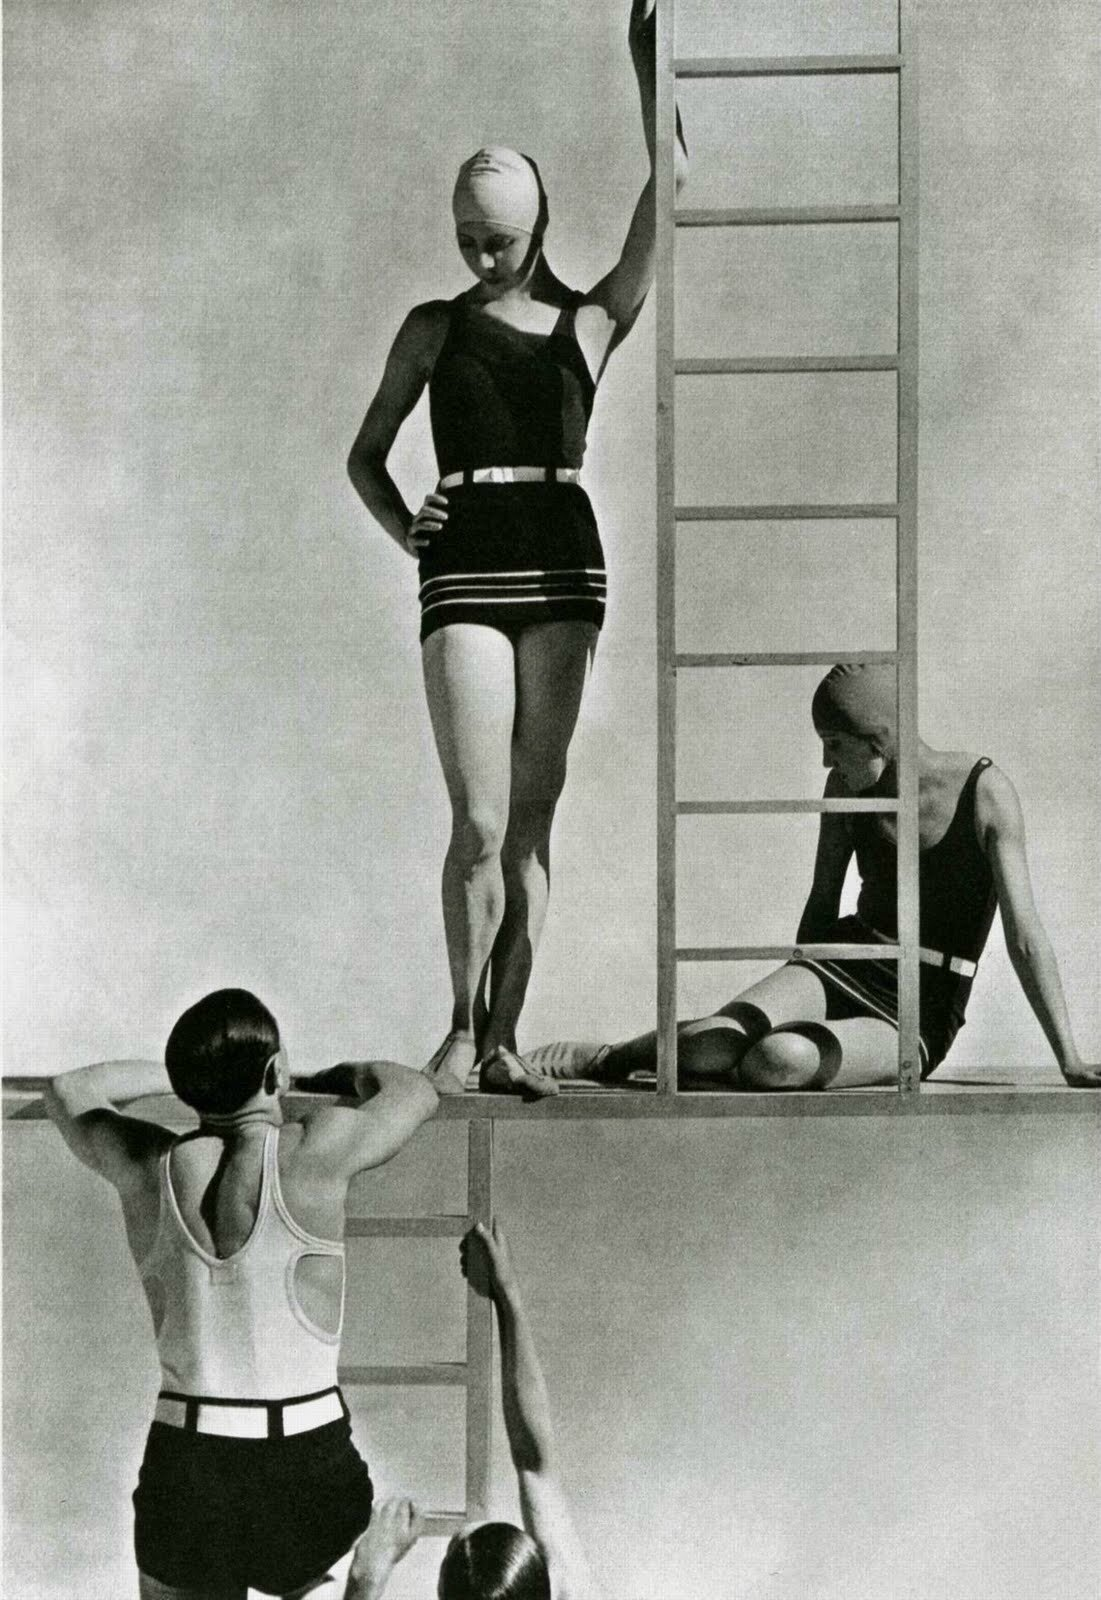 Georg Hoyningen Huene Bathing Suits,1929